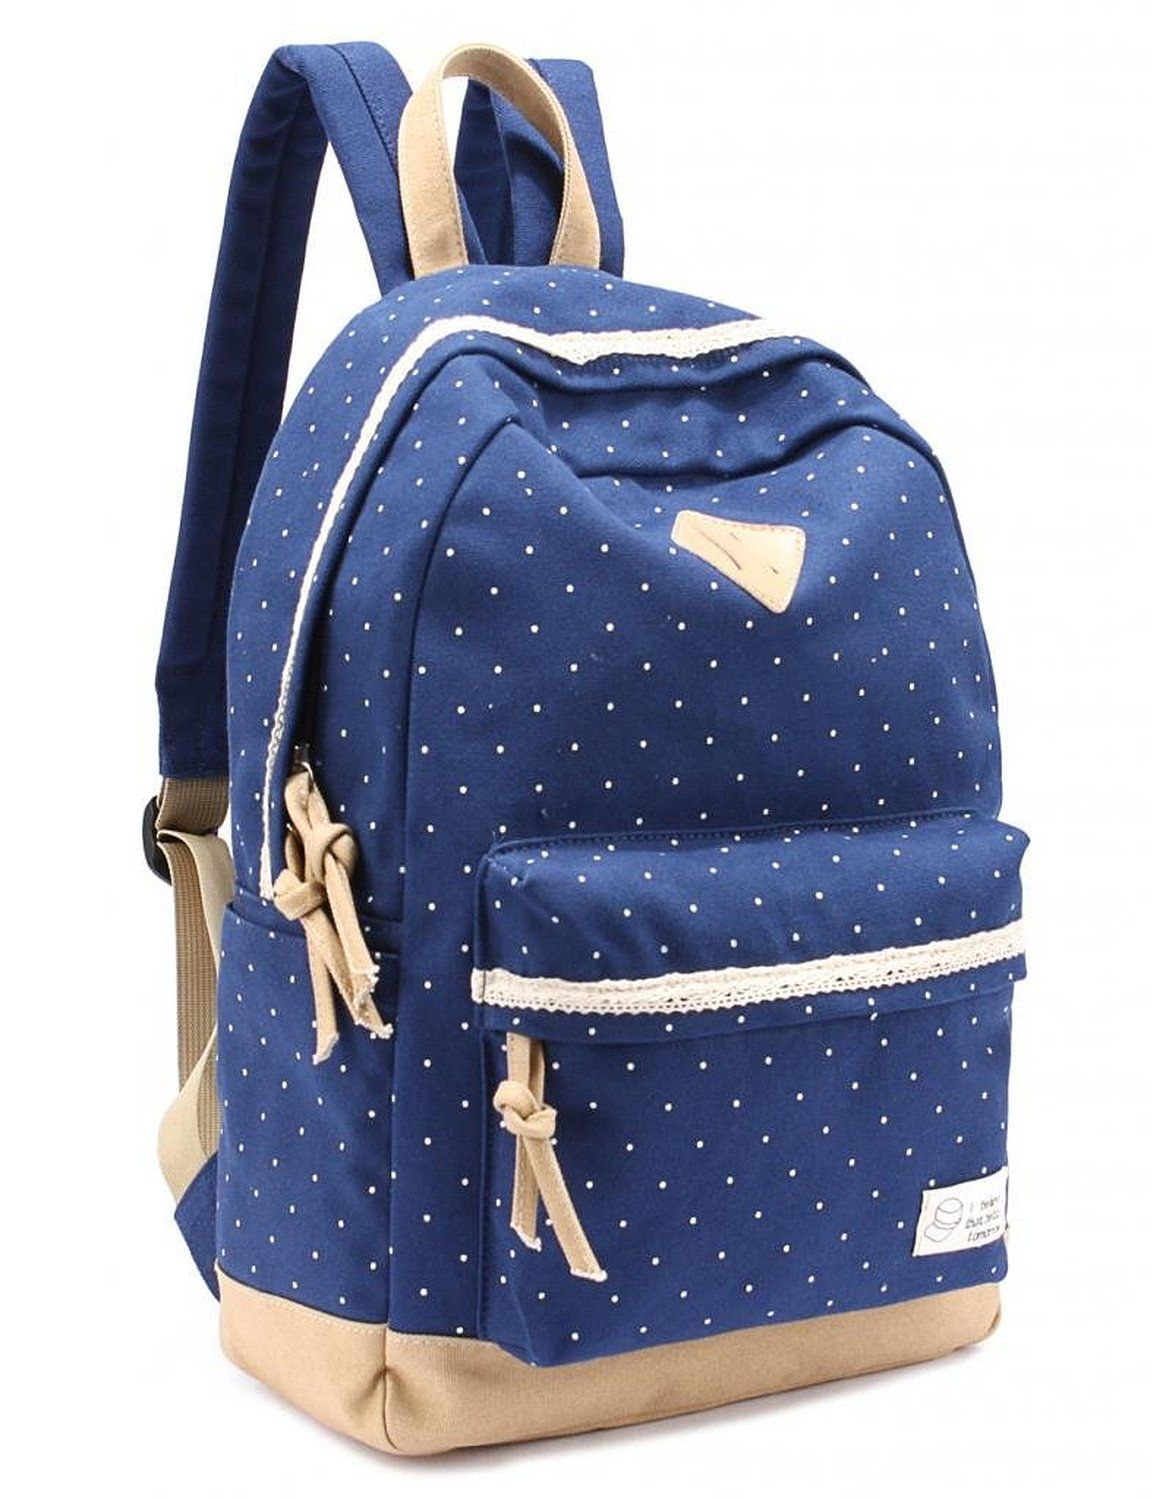 ... Laptop Backpack Cute Travel School College Shoulder Bag Bookbags Daypack  for Teenage Girls Students Women-With Laptop Compartment Dark Blue  Clothing 644bc5ba94e93